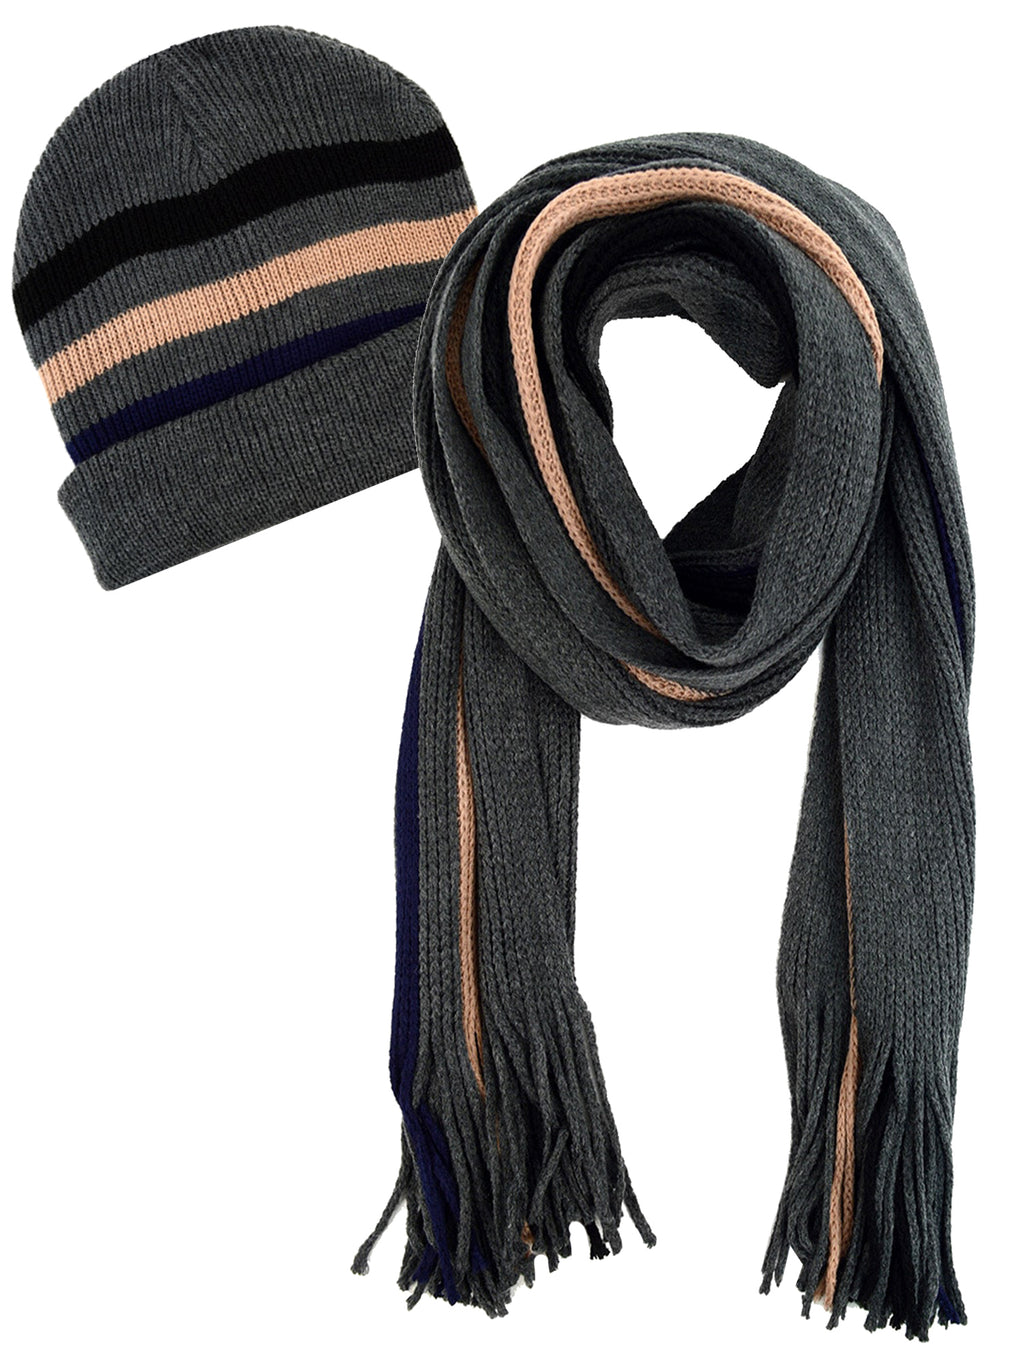 Mens Gray & Beige Knit Winter Scarf & Hat Set